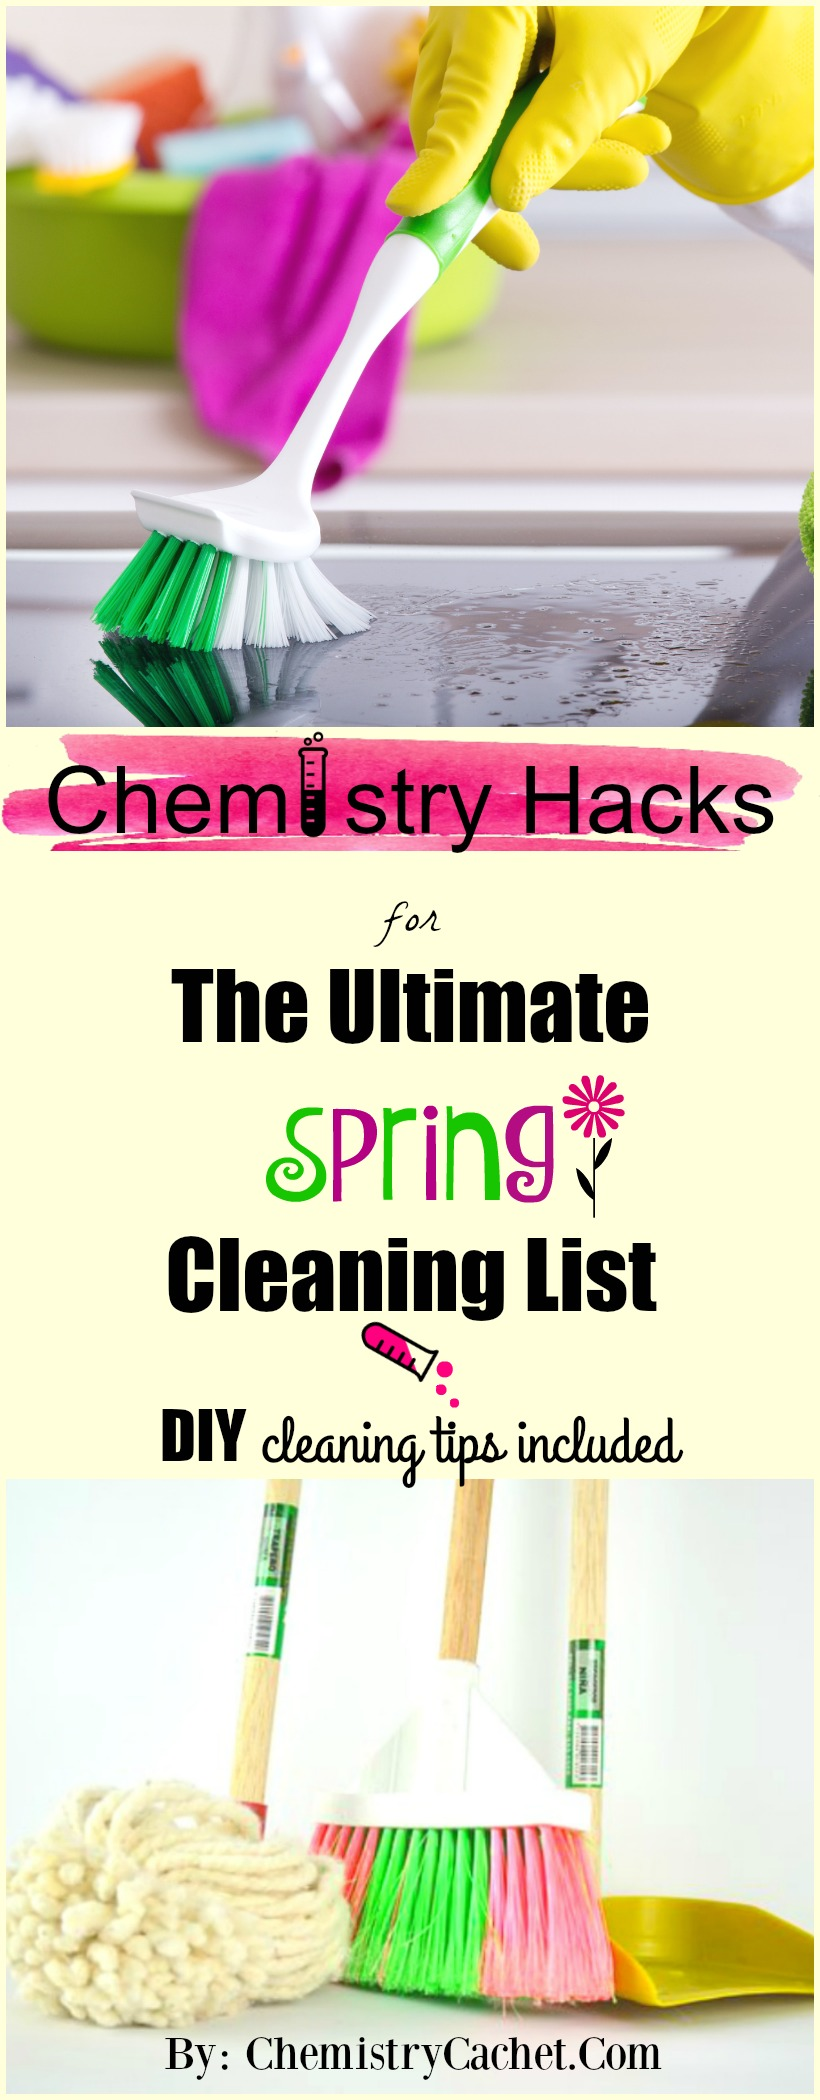 Chemistry Hacks by ChemistryCachet.Com brings the ULTIMATE spring cleaning list with DIY cleaning tipsideas. Get the full spring cleaning post on chemistrycachet.com